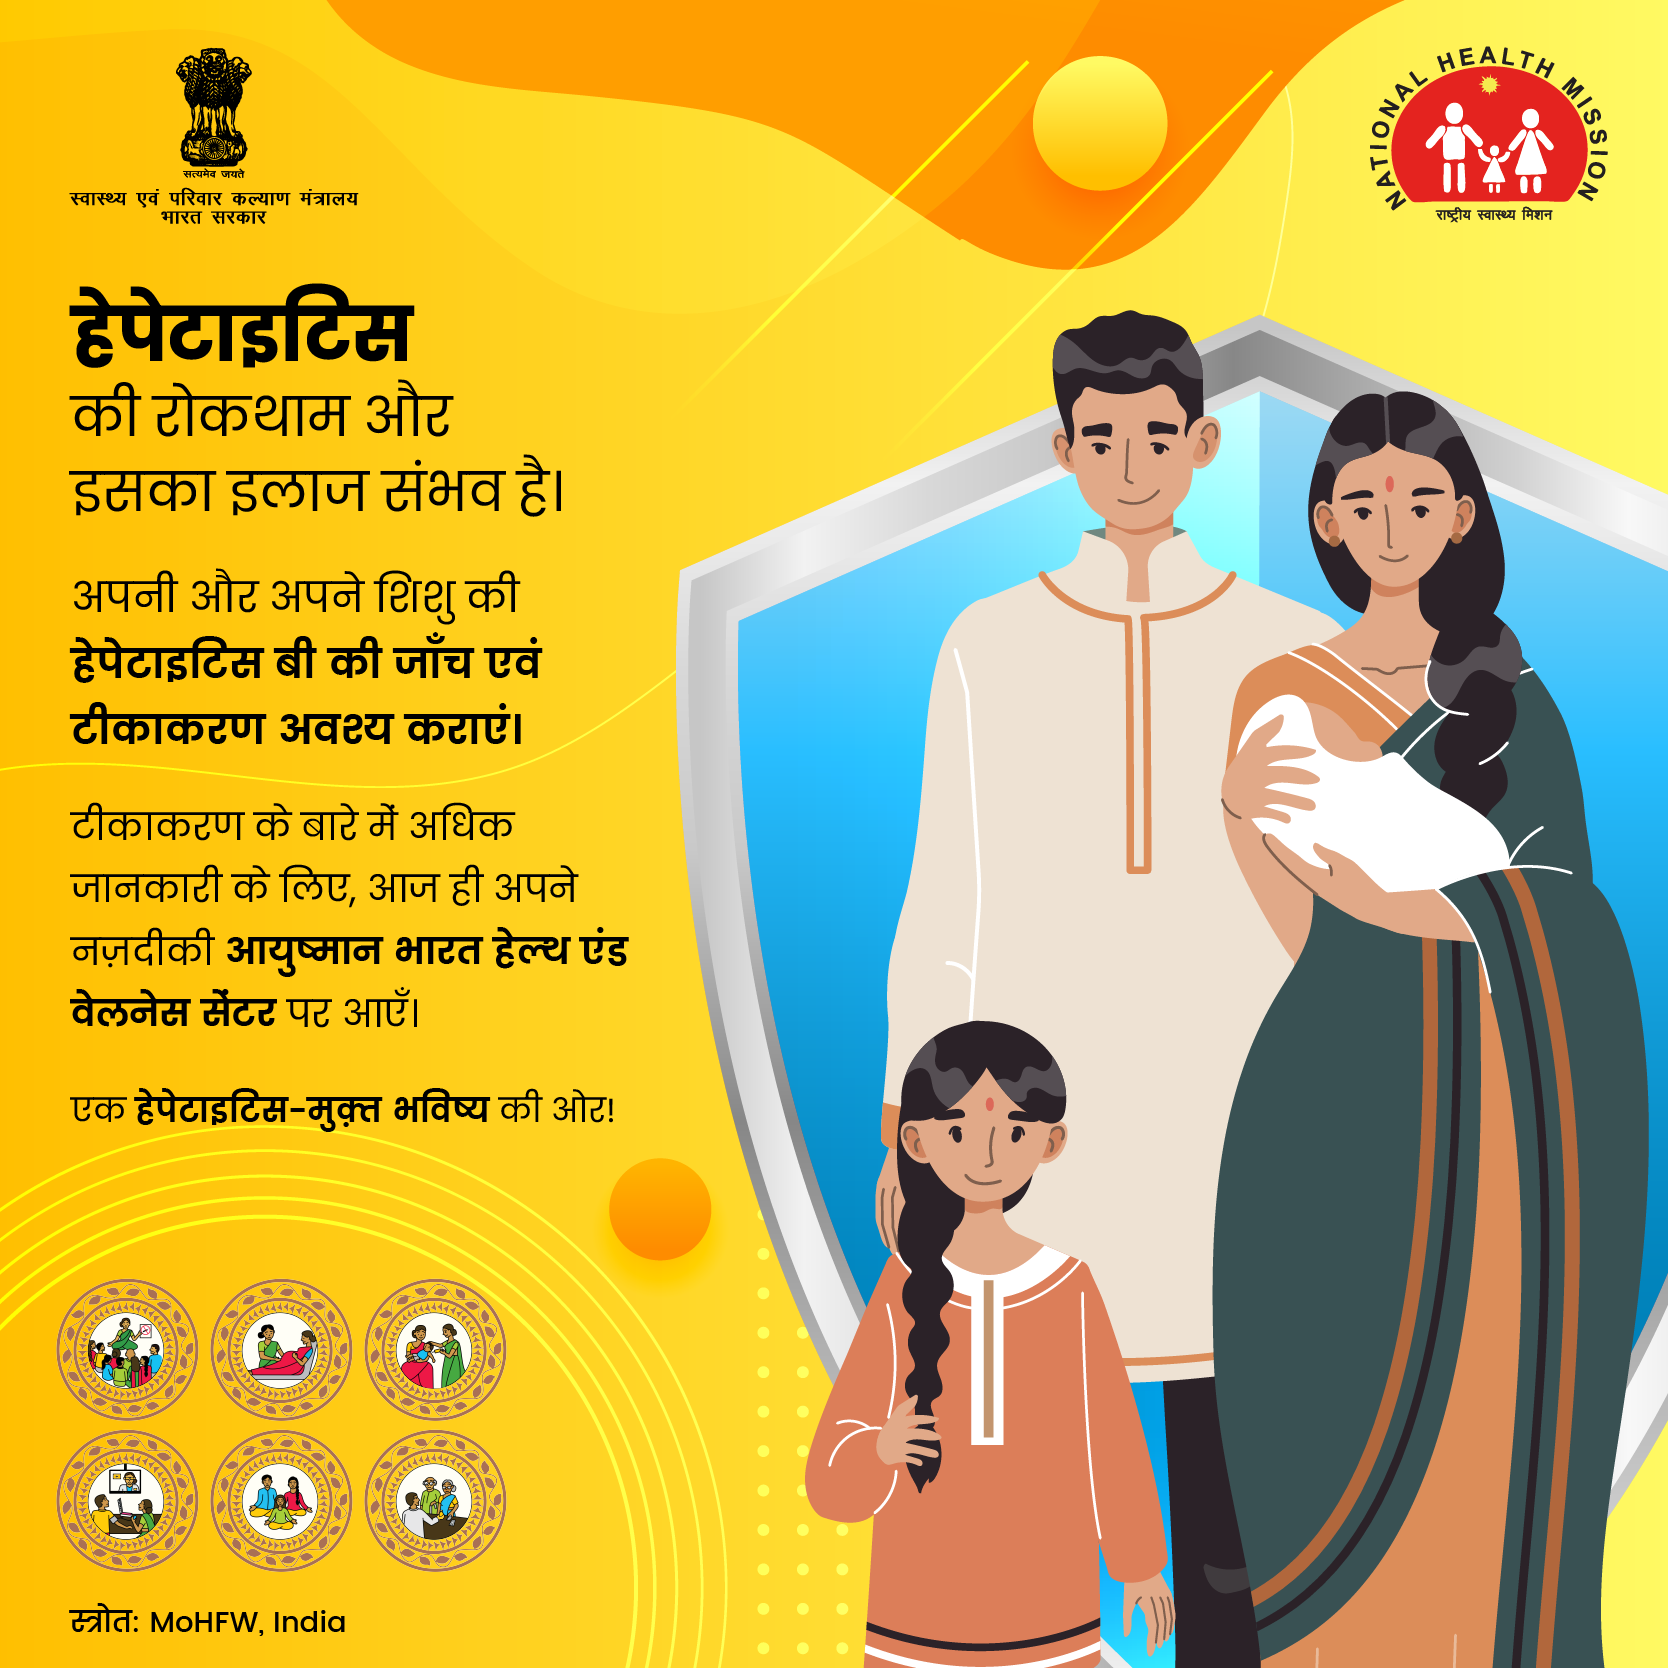 -  Ministry of Health and Family Welfare, Government of India